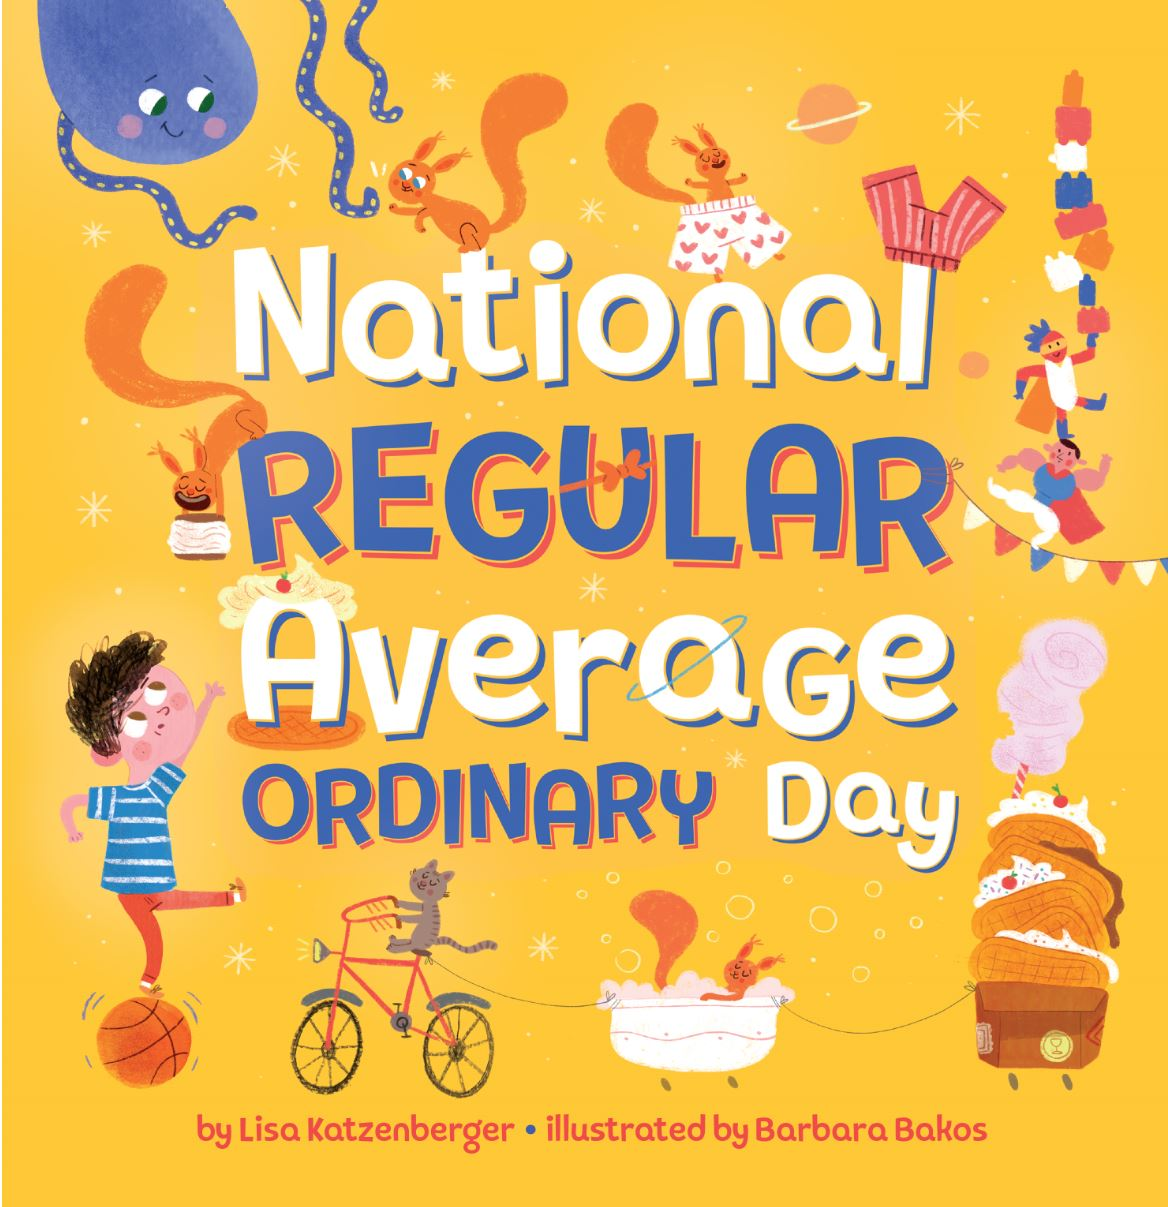 national-regular-average-ordinary-day-cover